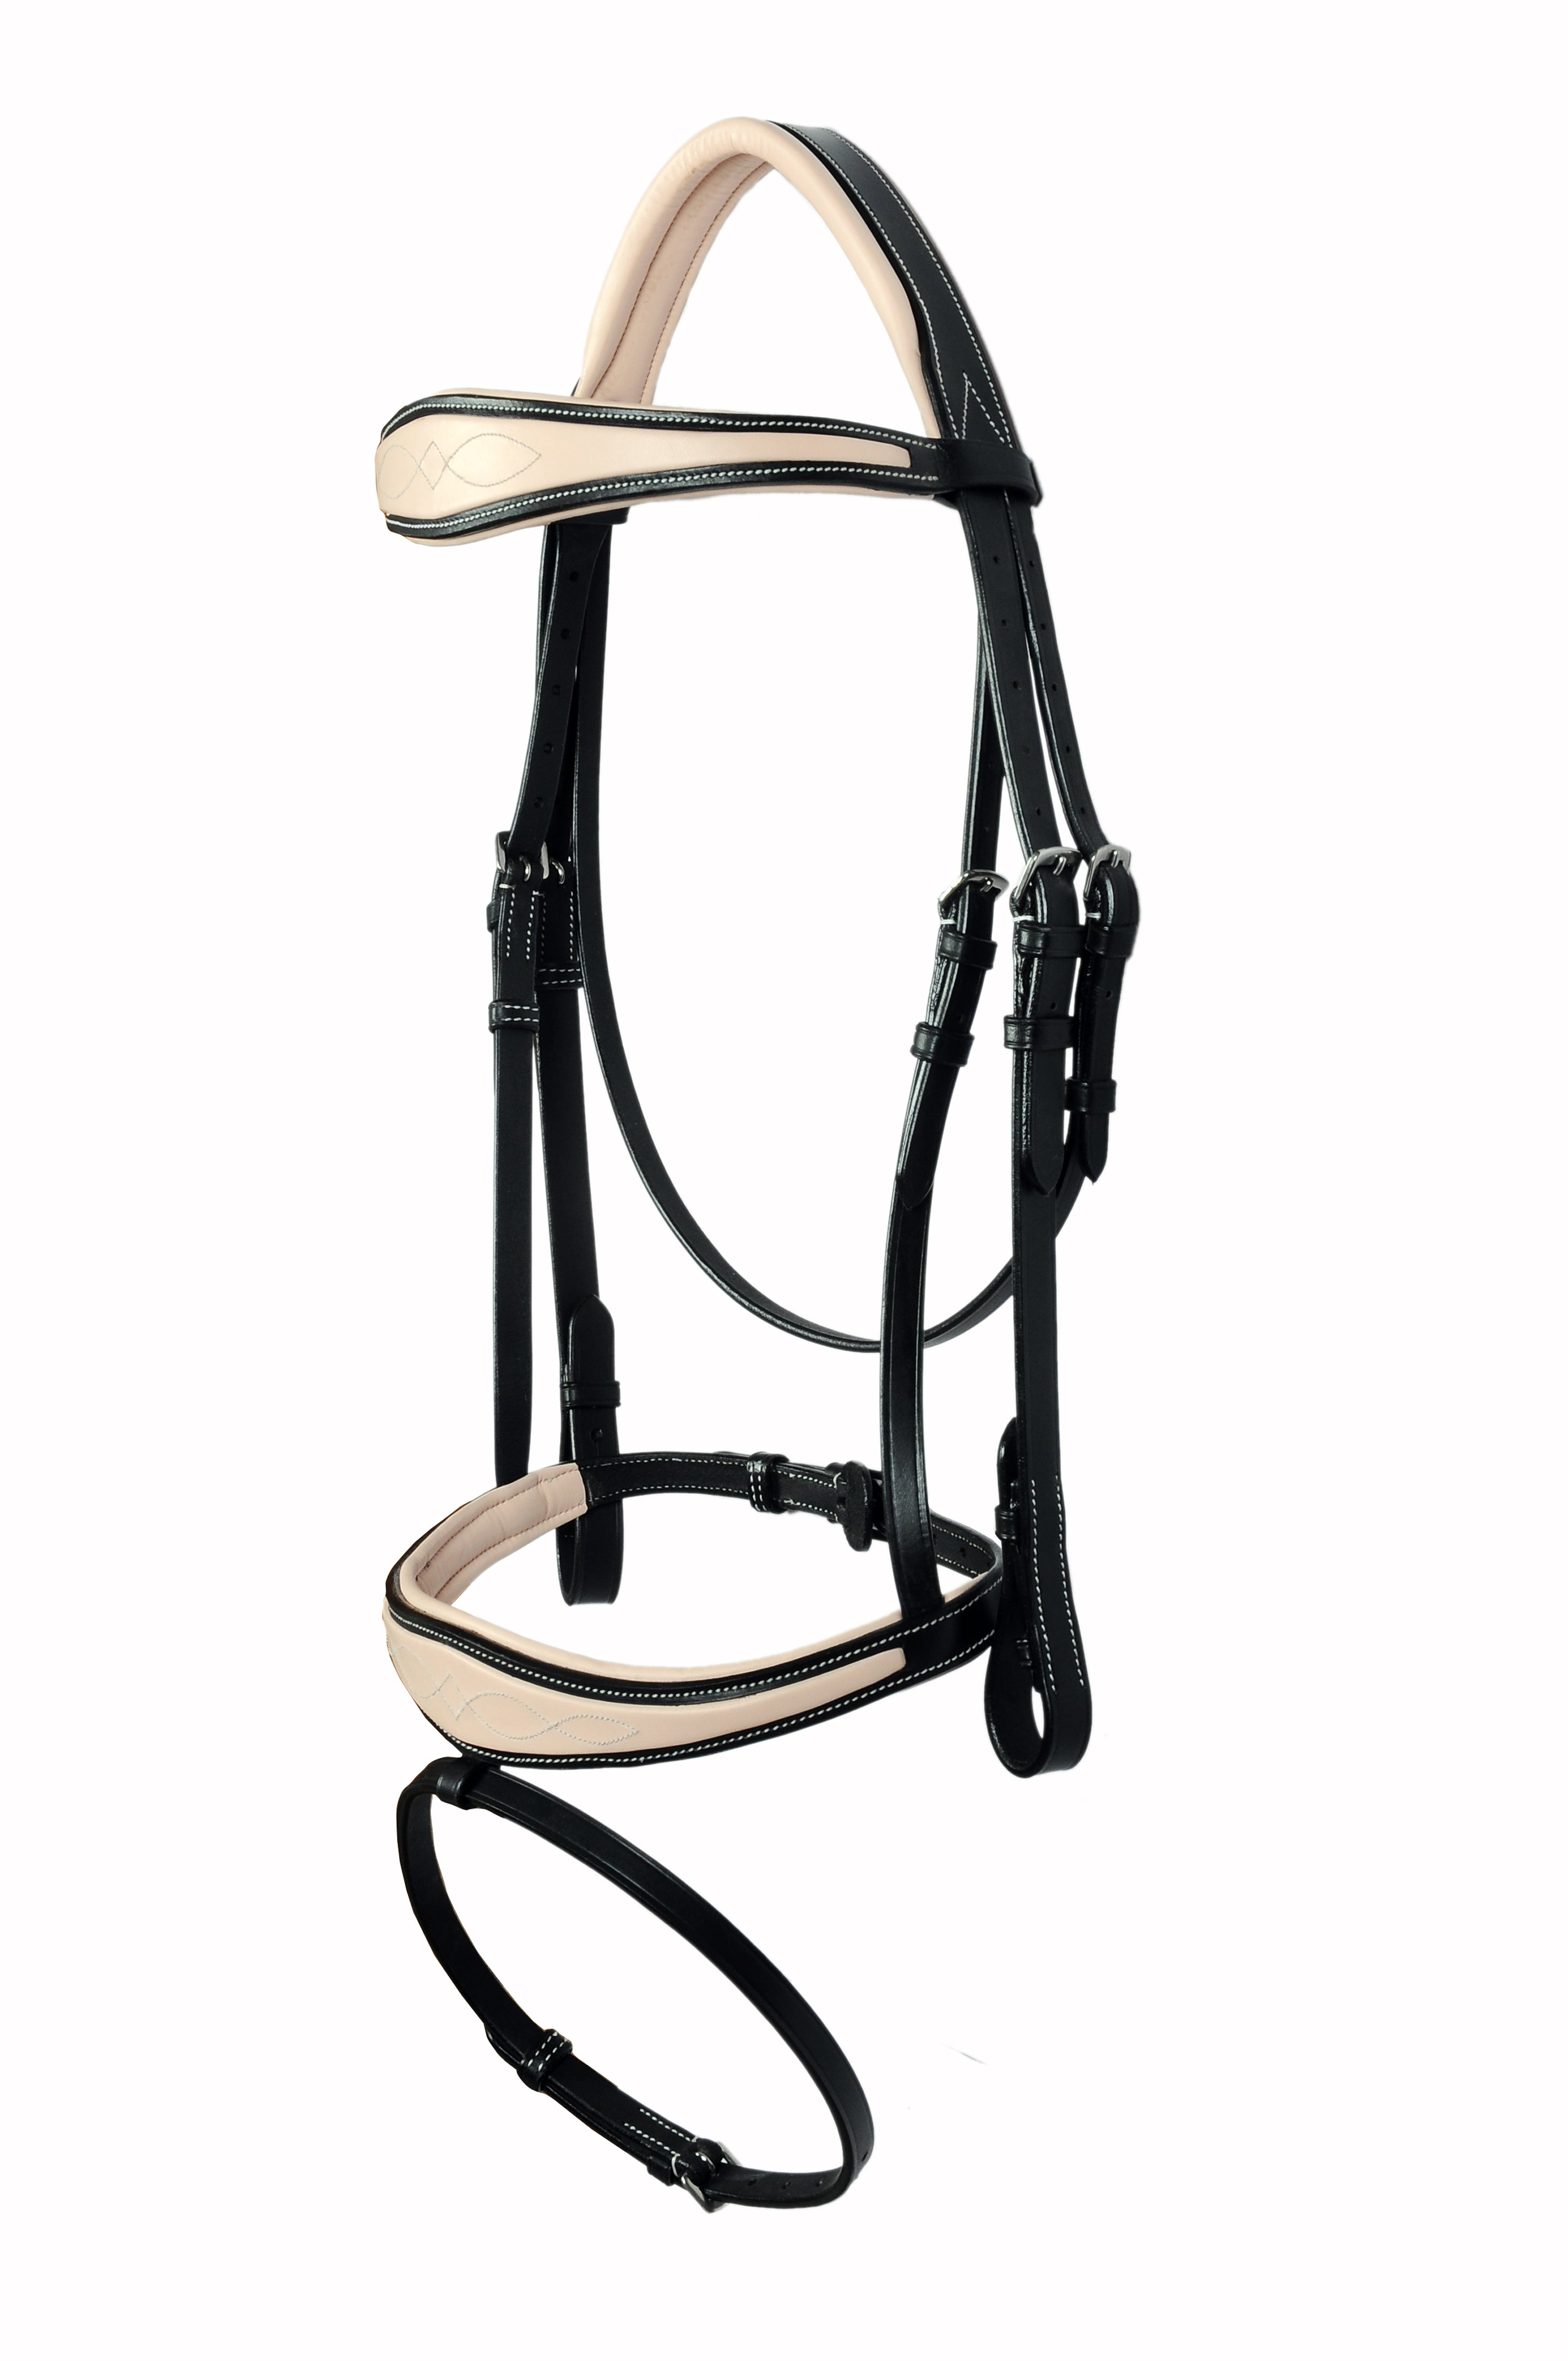 Padded Fancy Stitched Leather Jump Bridle